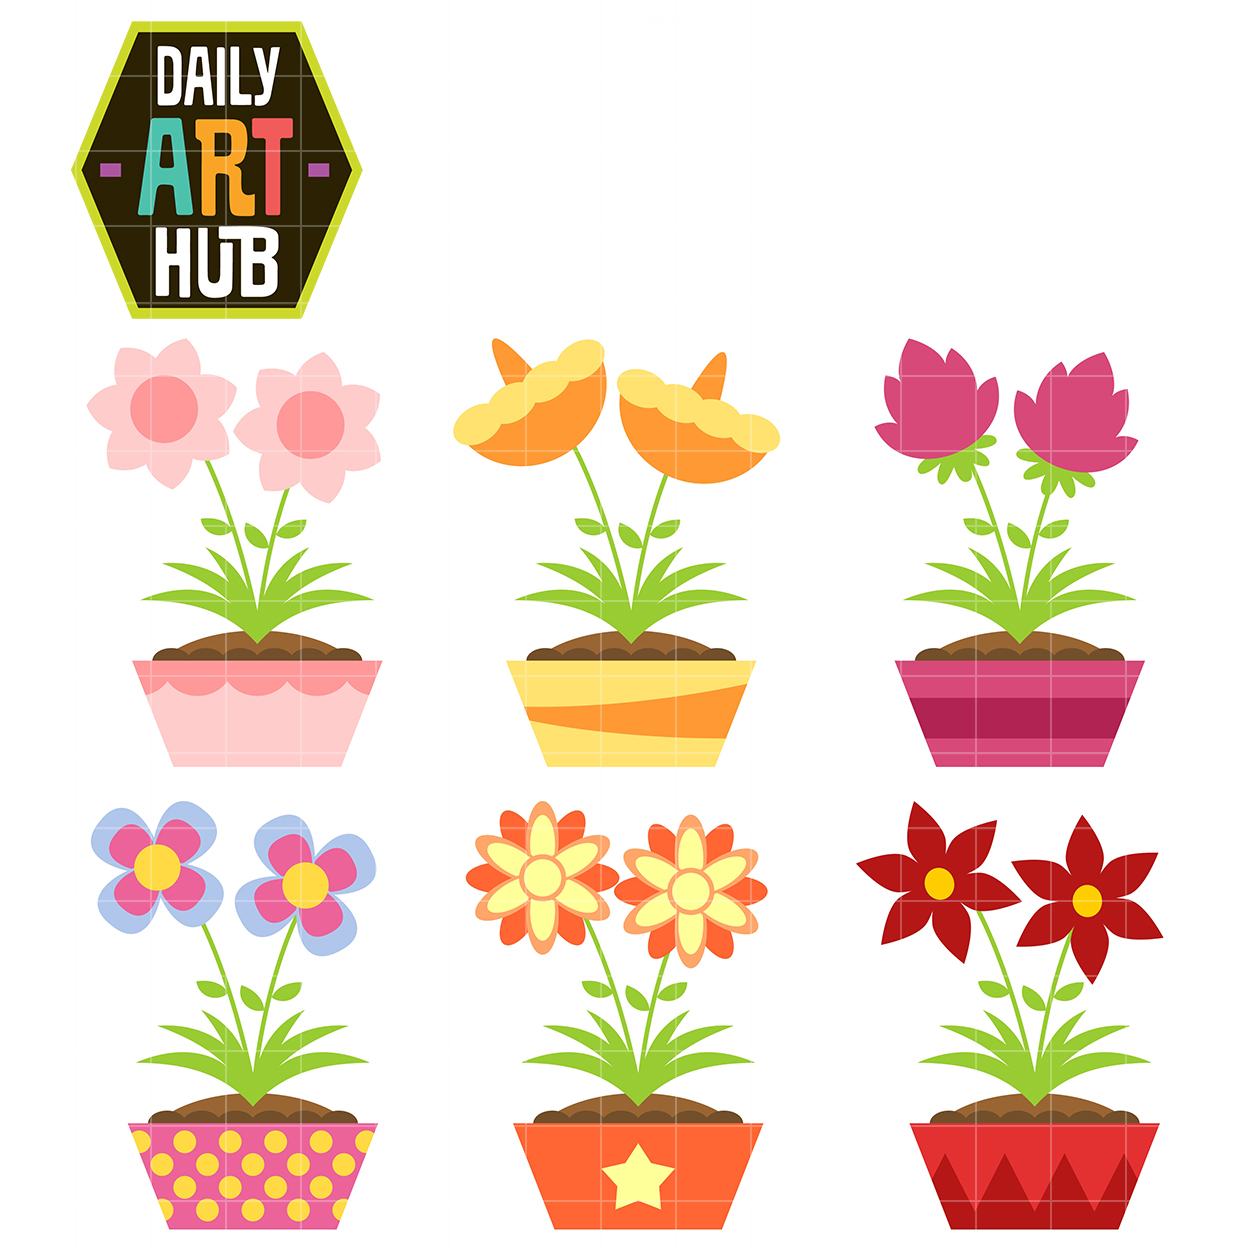 simple and cute flowers clip art set daily art hub free clip art rh dailyarthub com cute flowers clip art cute flower pot clipart